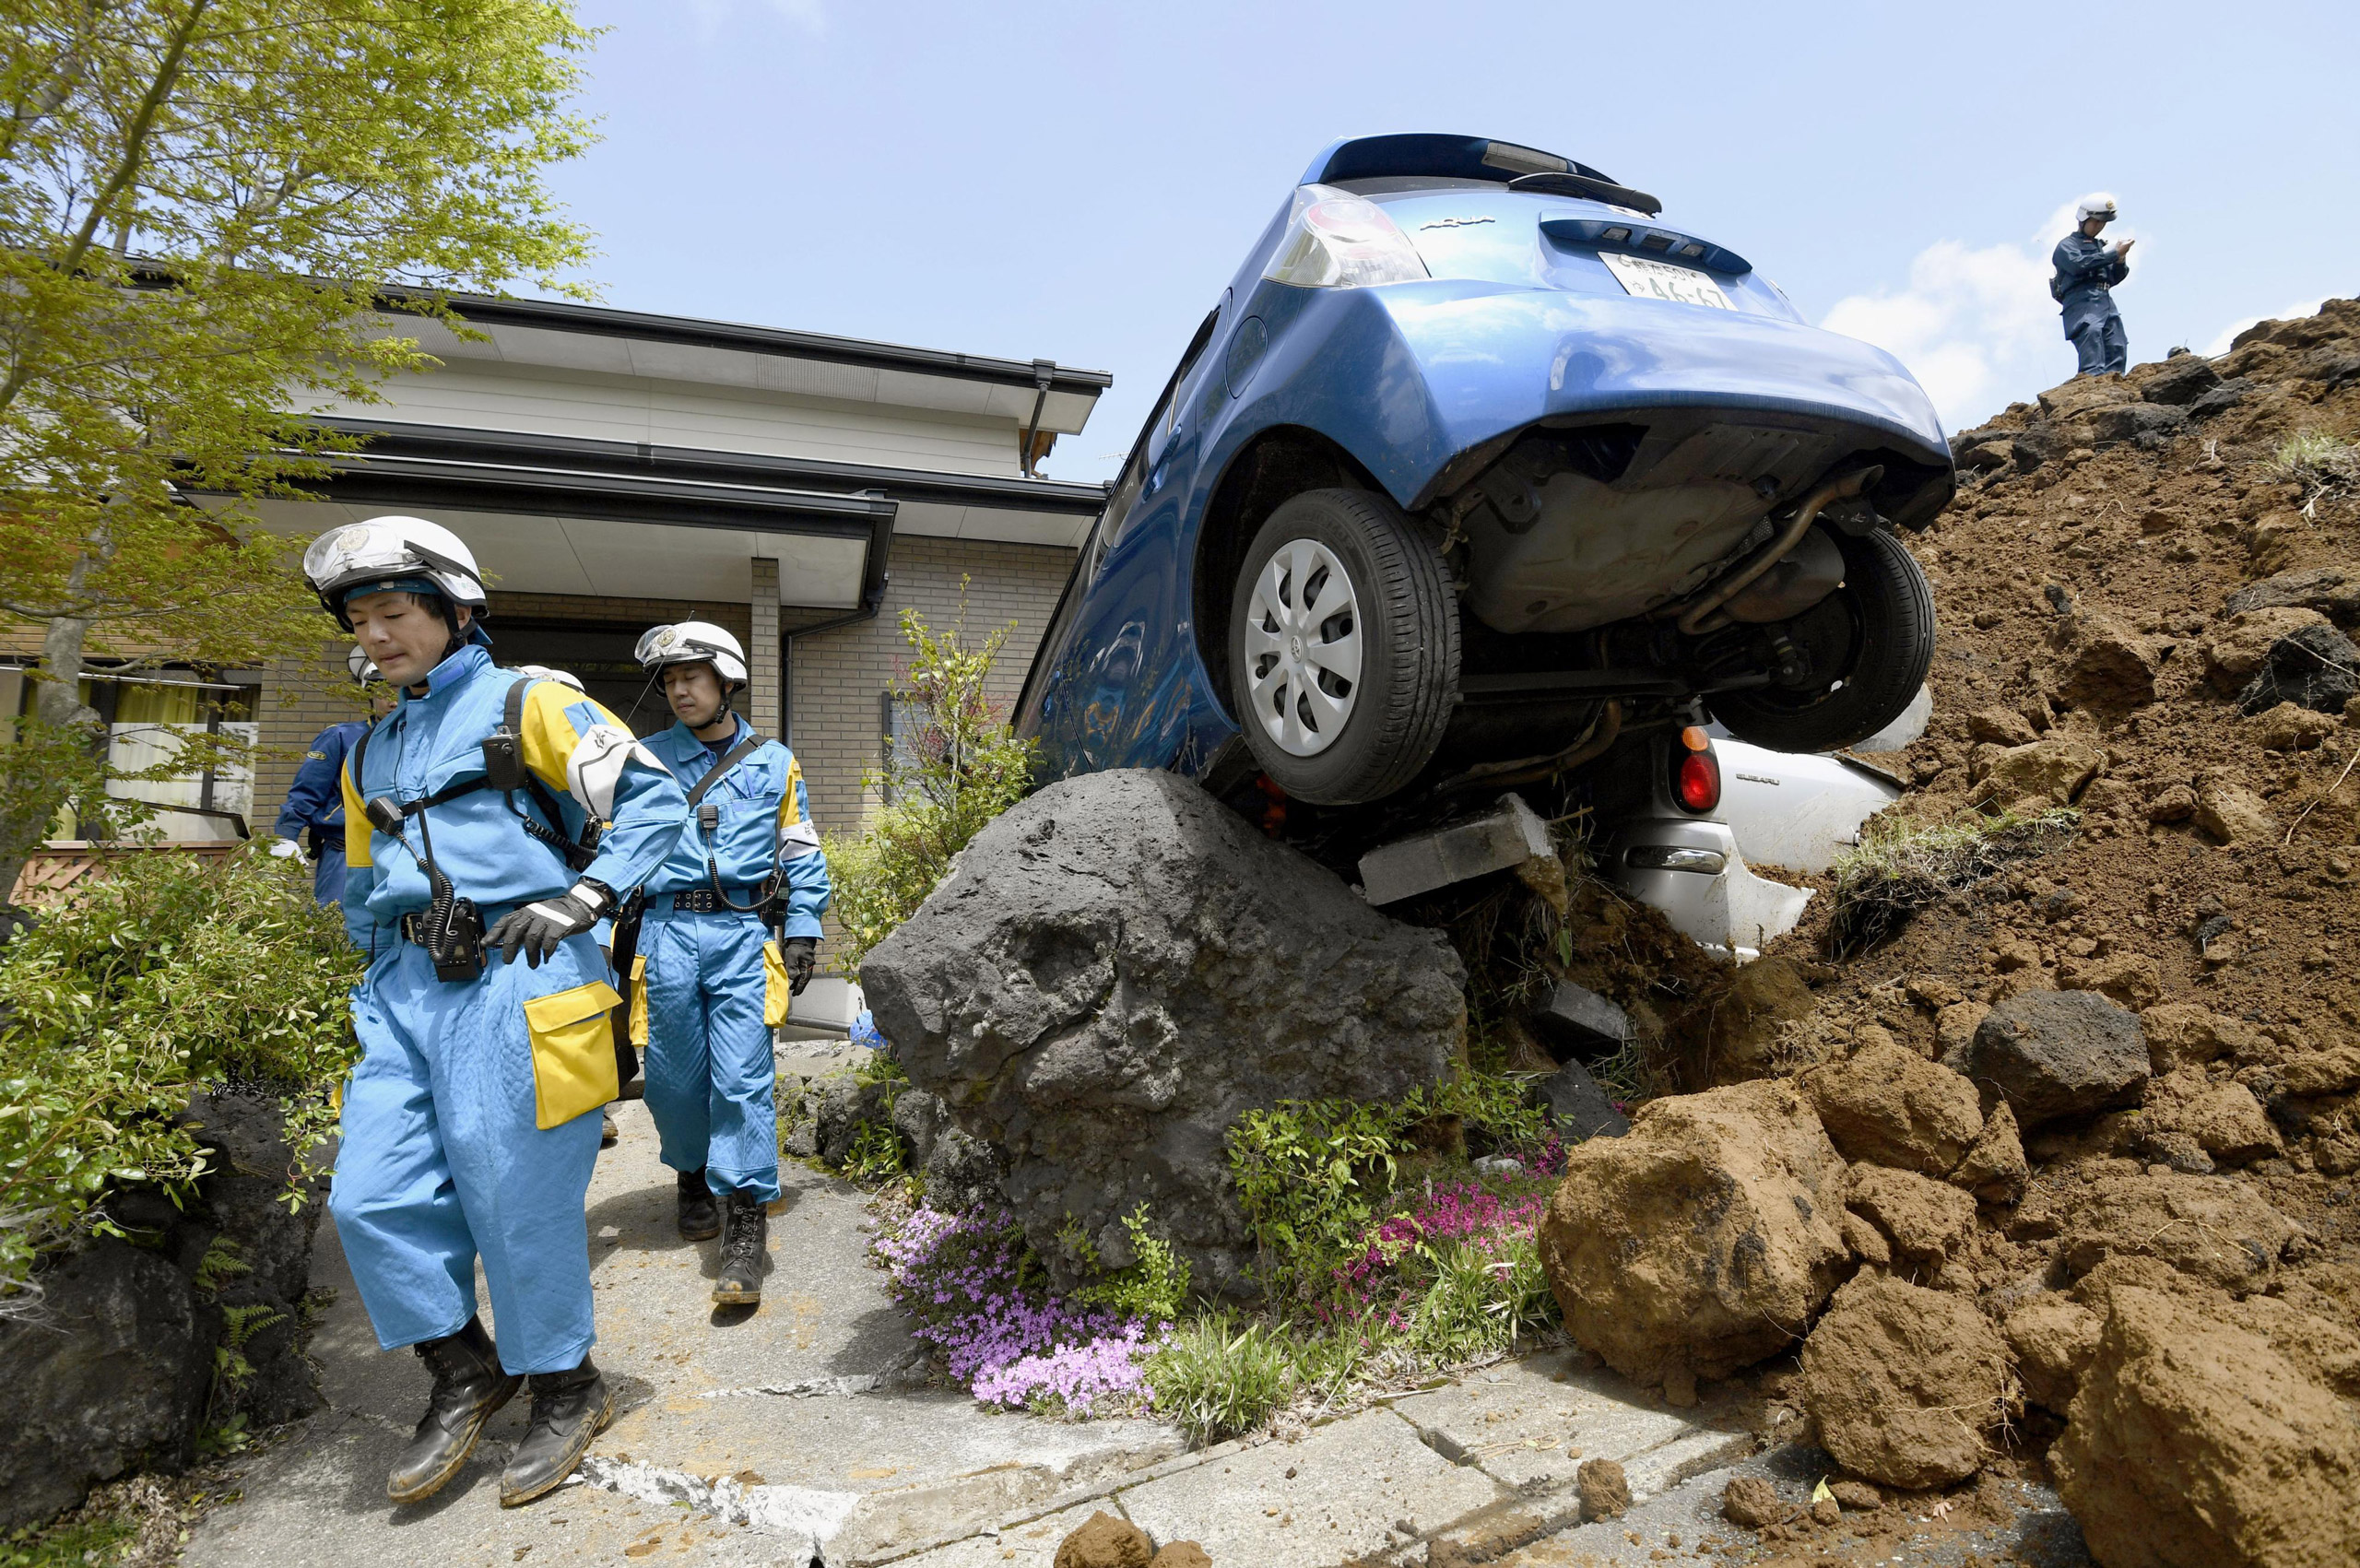 Police officers conduct a search operation at the site of a landslide caused by an earthquake in Minamiaso, Japan, on April 17, 2016.